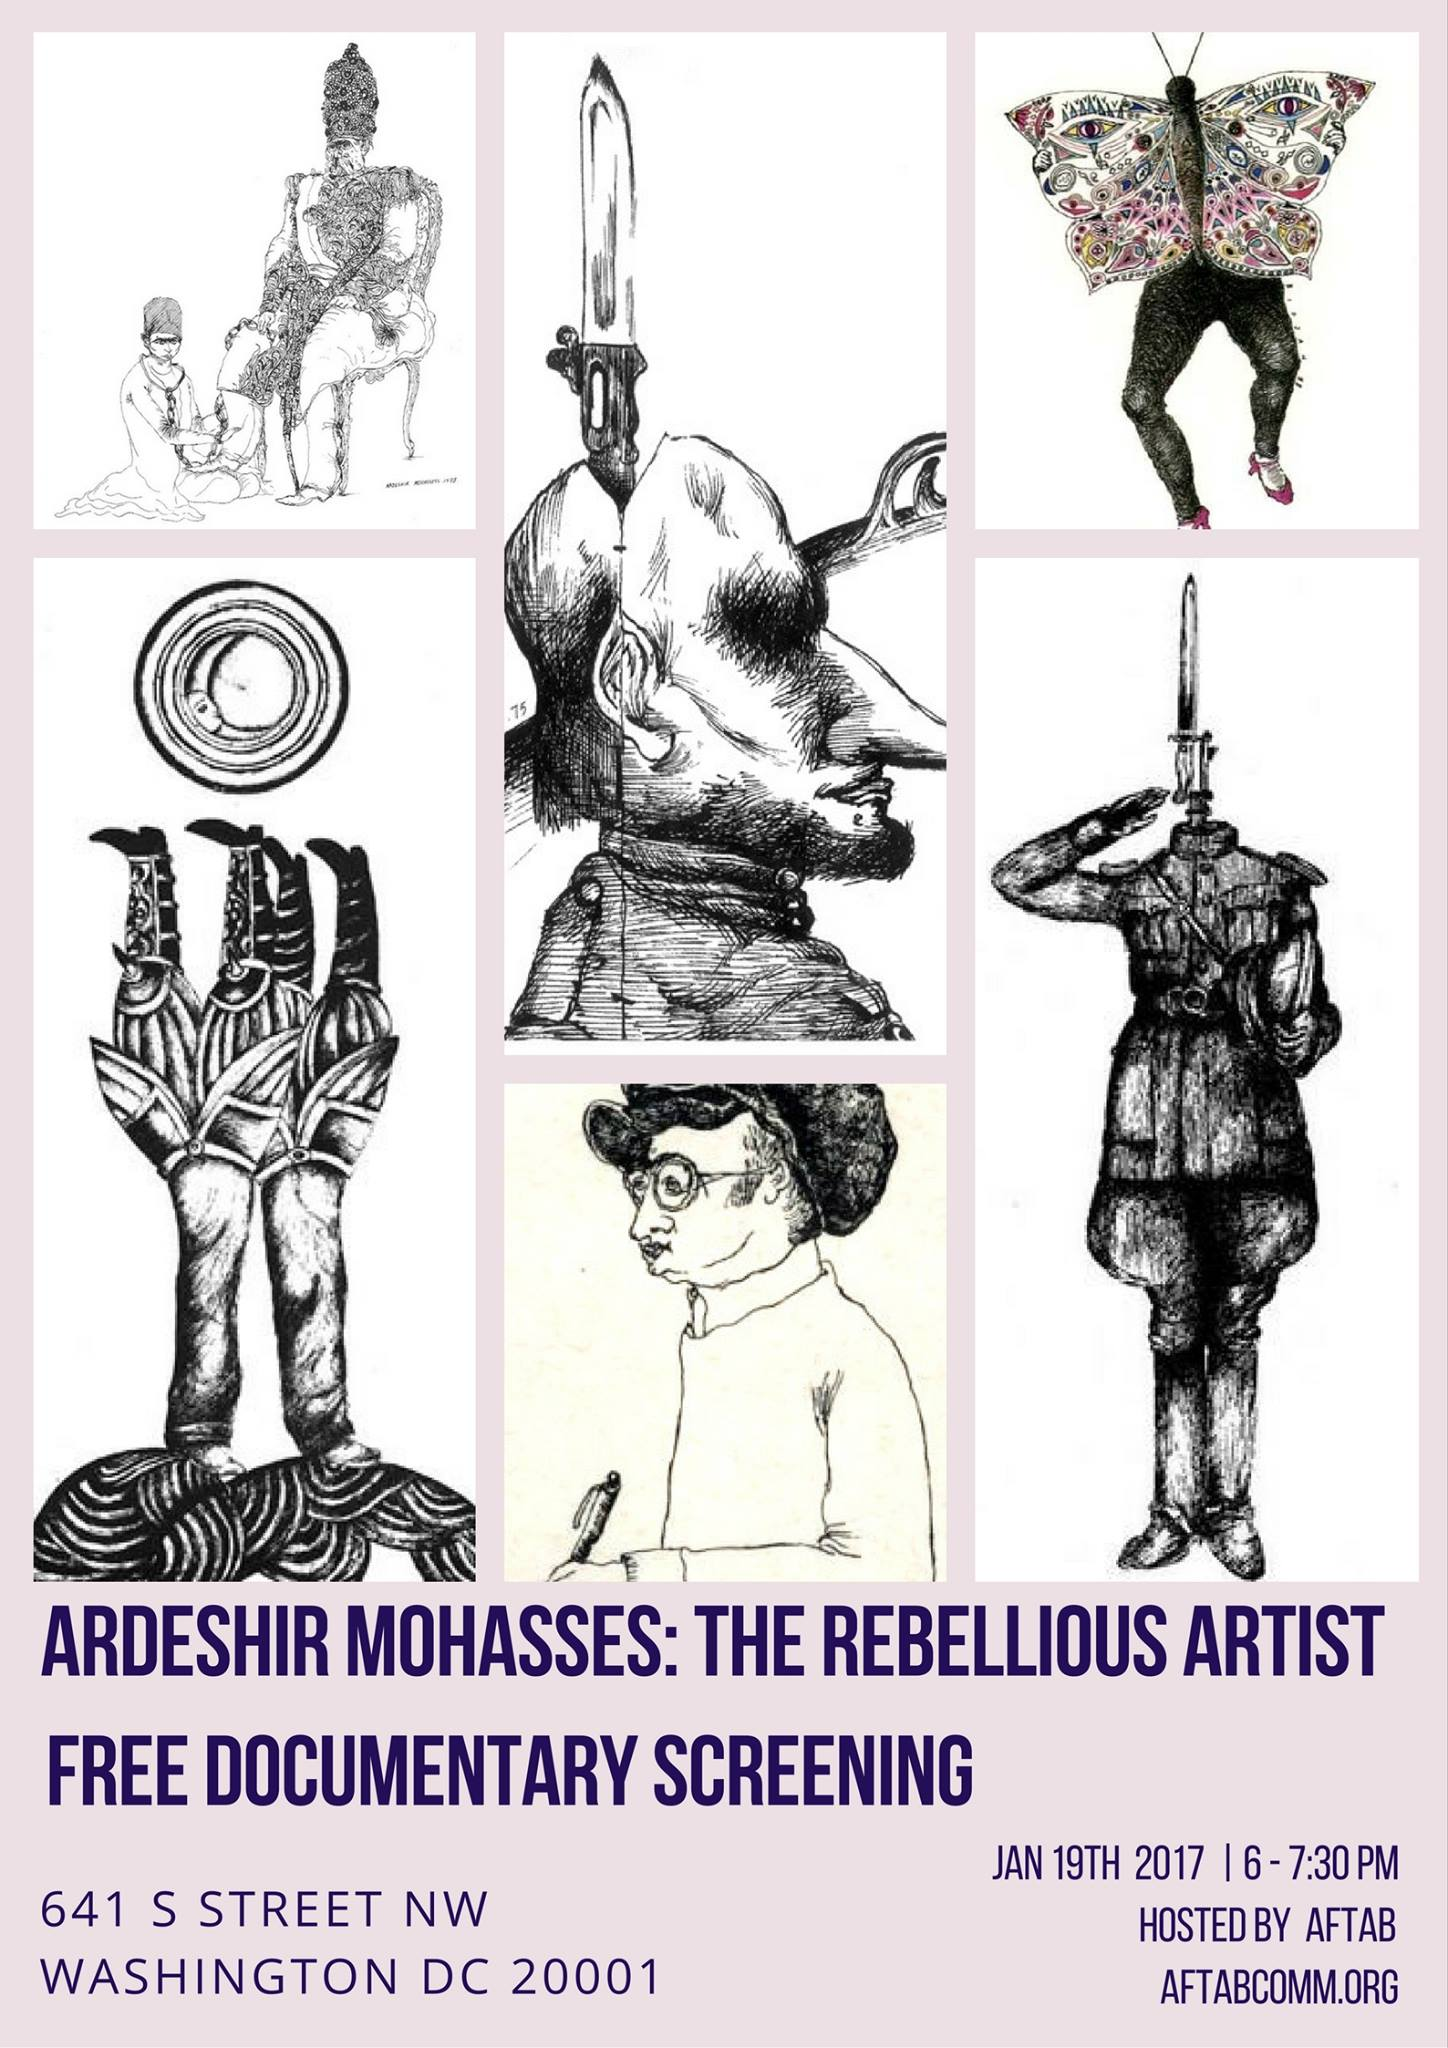 Ardeshir Mohasses: The Rebellious Artist Documentary Screening